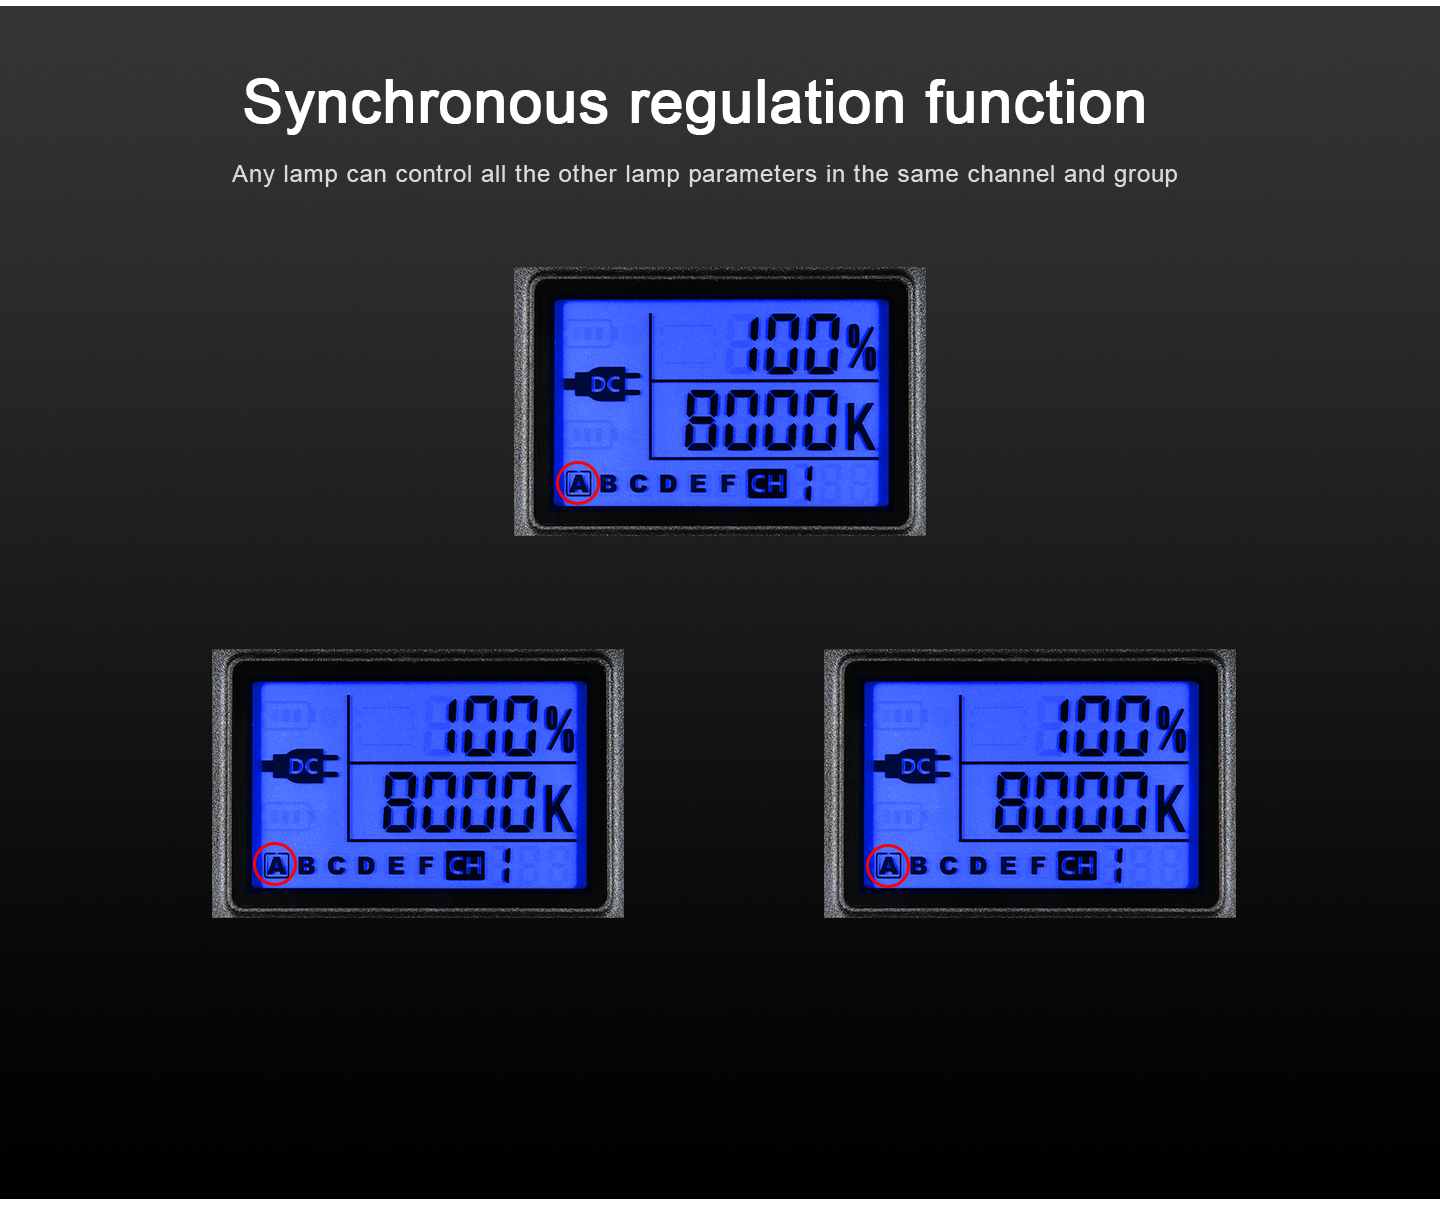 Synchronous regulation funtion